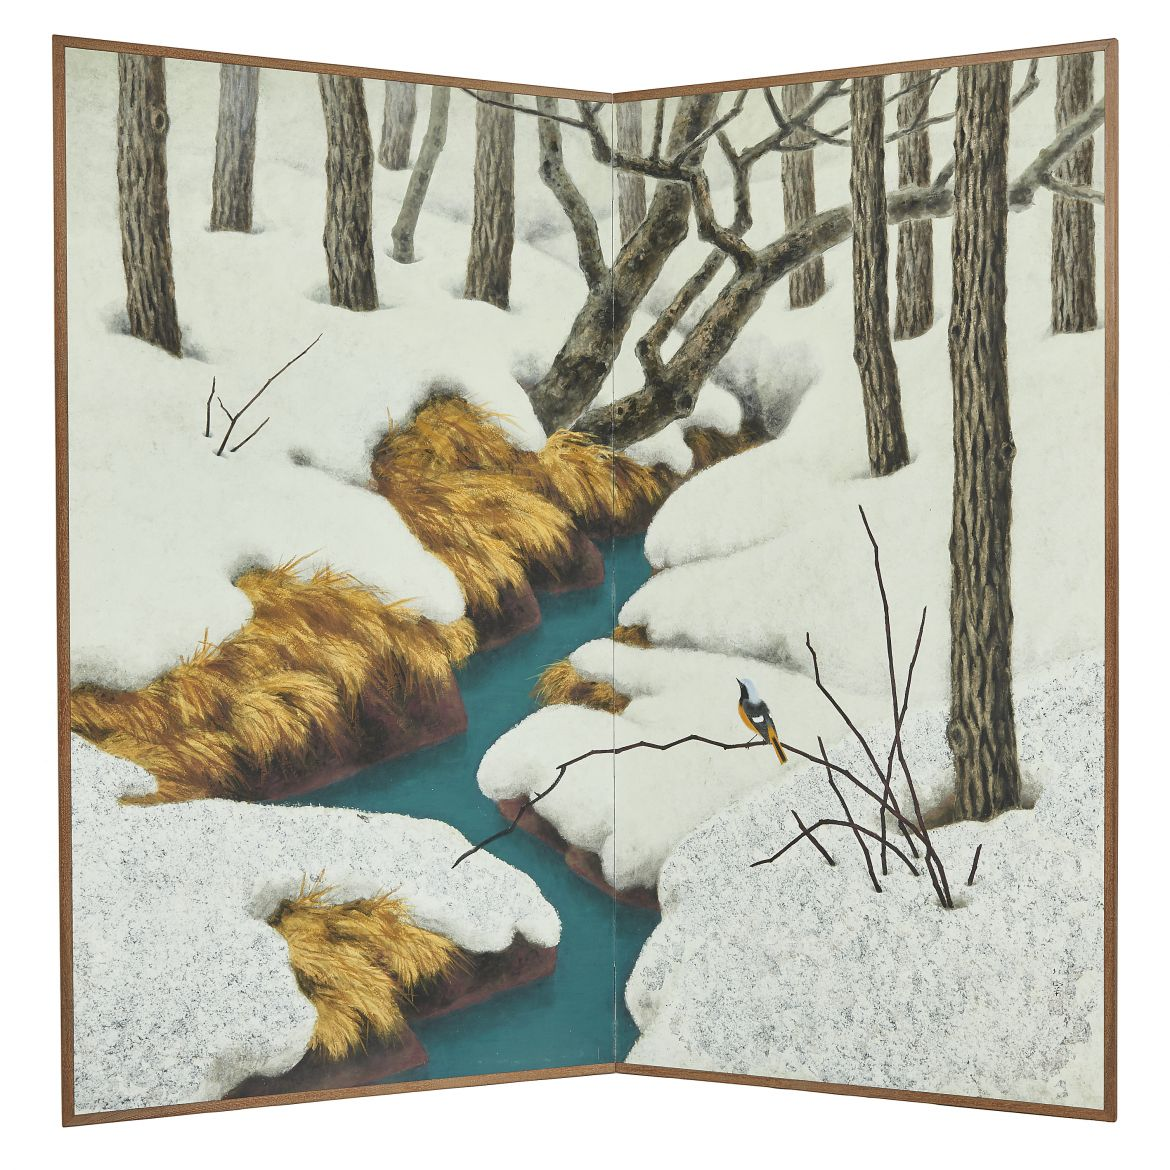 Japanese Screen of Forest